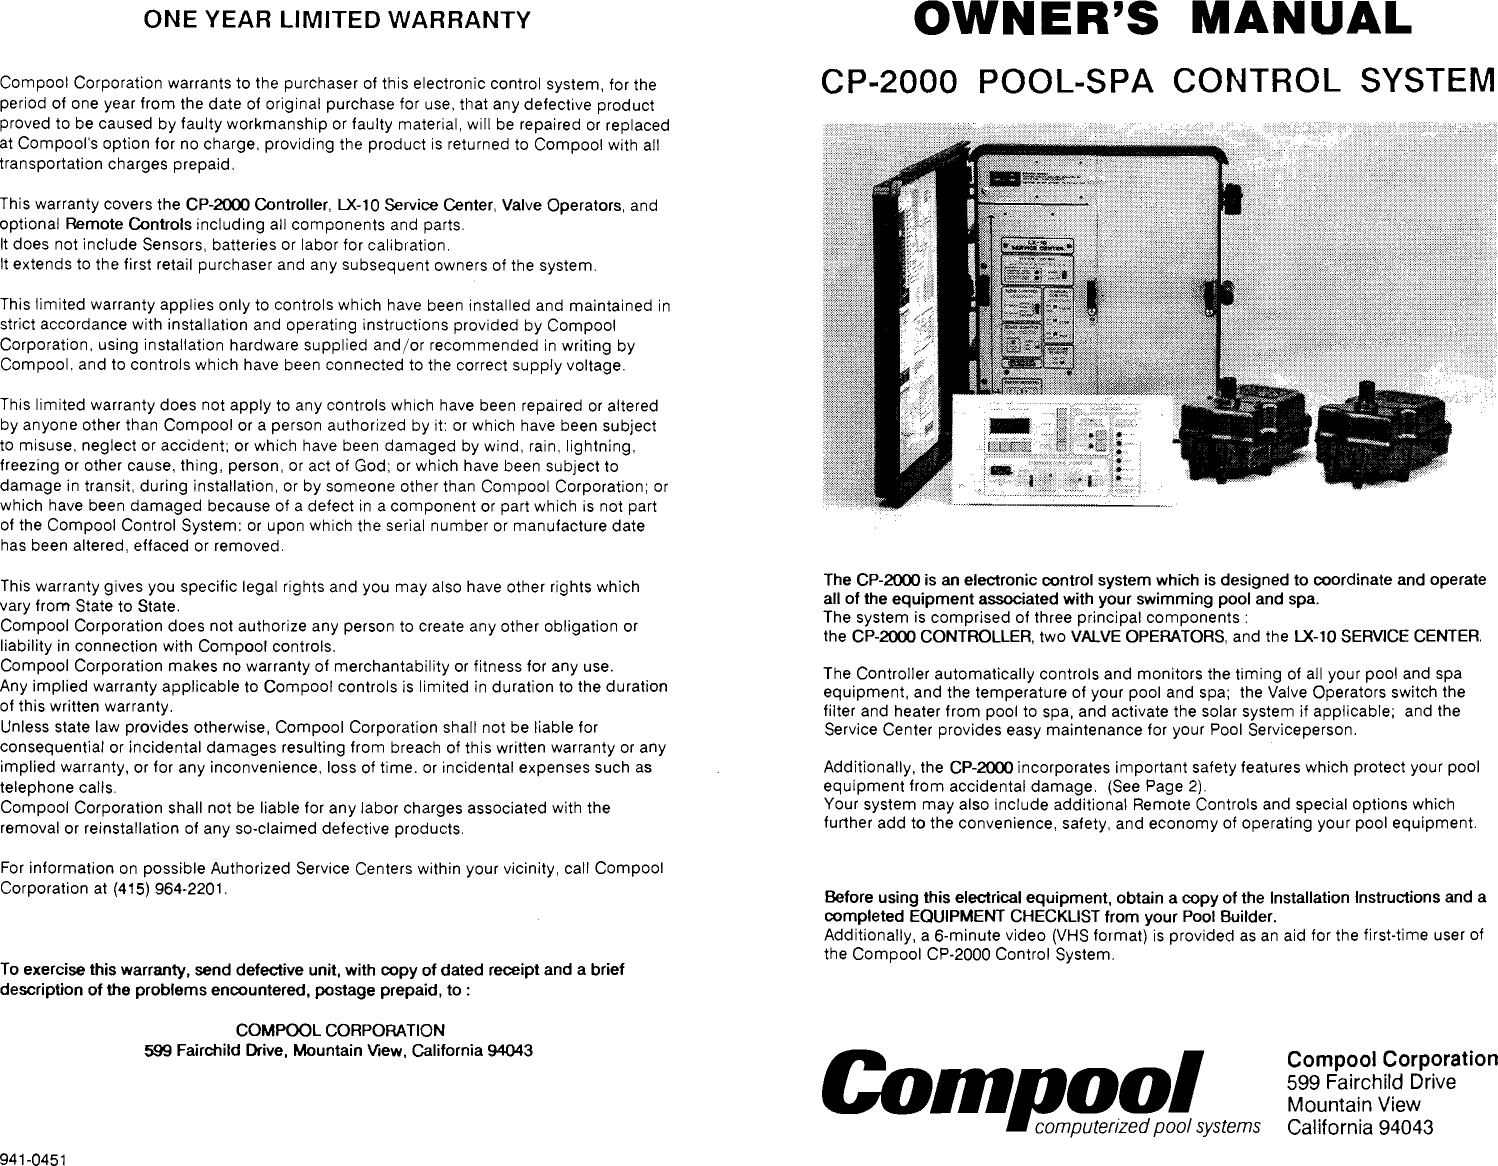 Pentair Pool Spa Control System Cp 2000 Users Manual Wiring Diagram Page 1 Of 8